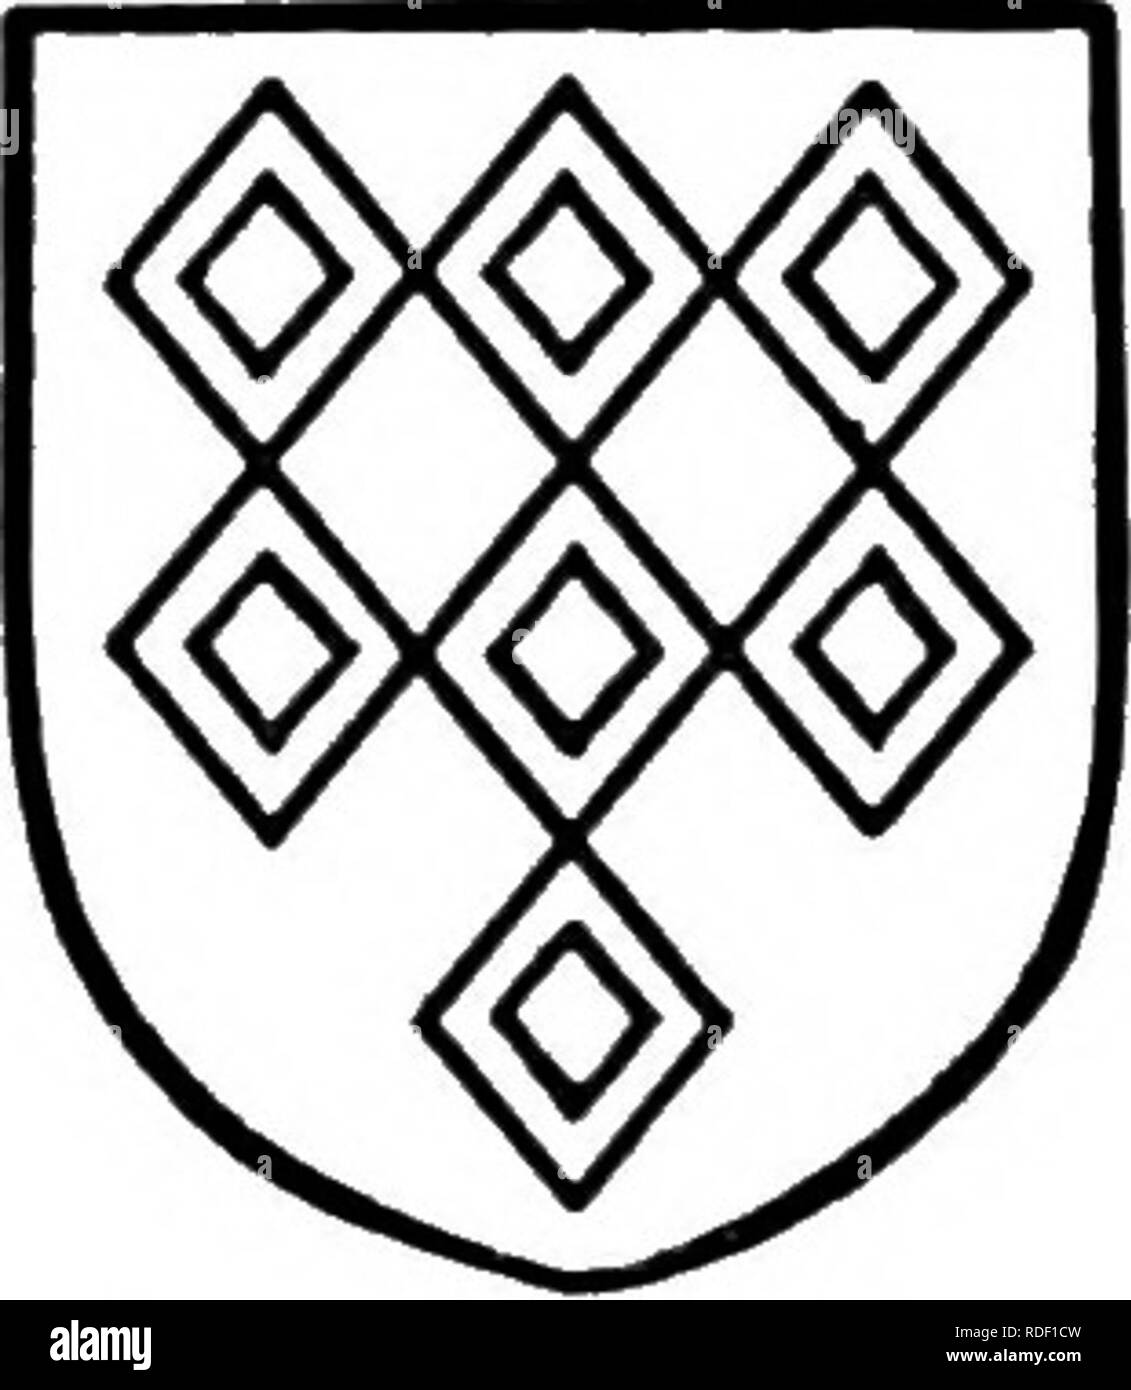 """. The Victoria history of the county of Bedford. Natural history. Spigurnel. Gules fretty argent a chief or •with a lion passant gules therein. Braybroke. seven voided gules. Argent lozenges In 1359, on the death of Sir Gerard Braybroke, the manor passed to his son Gerard,"""" and it continued in the possession of the Braybroke family. At the death of Sir Gerard Braybroke in 1427 it passed to Sir William Babyngton, a justice of Common Pleas, one of the executors of Sir Gerard Braybroke's will."""" Sir William Babyngton died seised of the manor in 1454, leaving a son and heir William,"""" - Stock Image"""